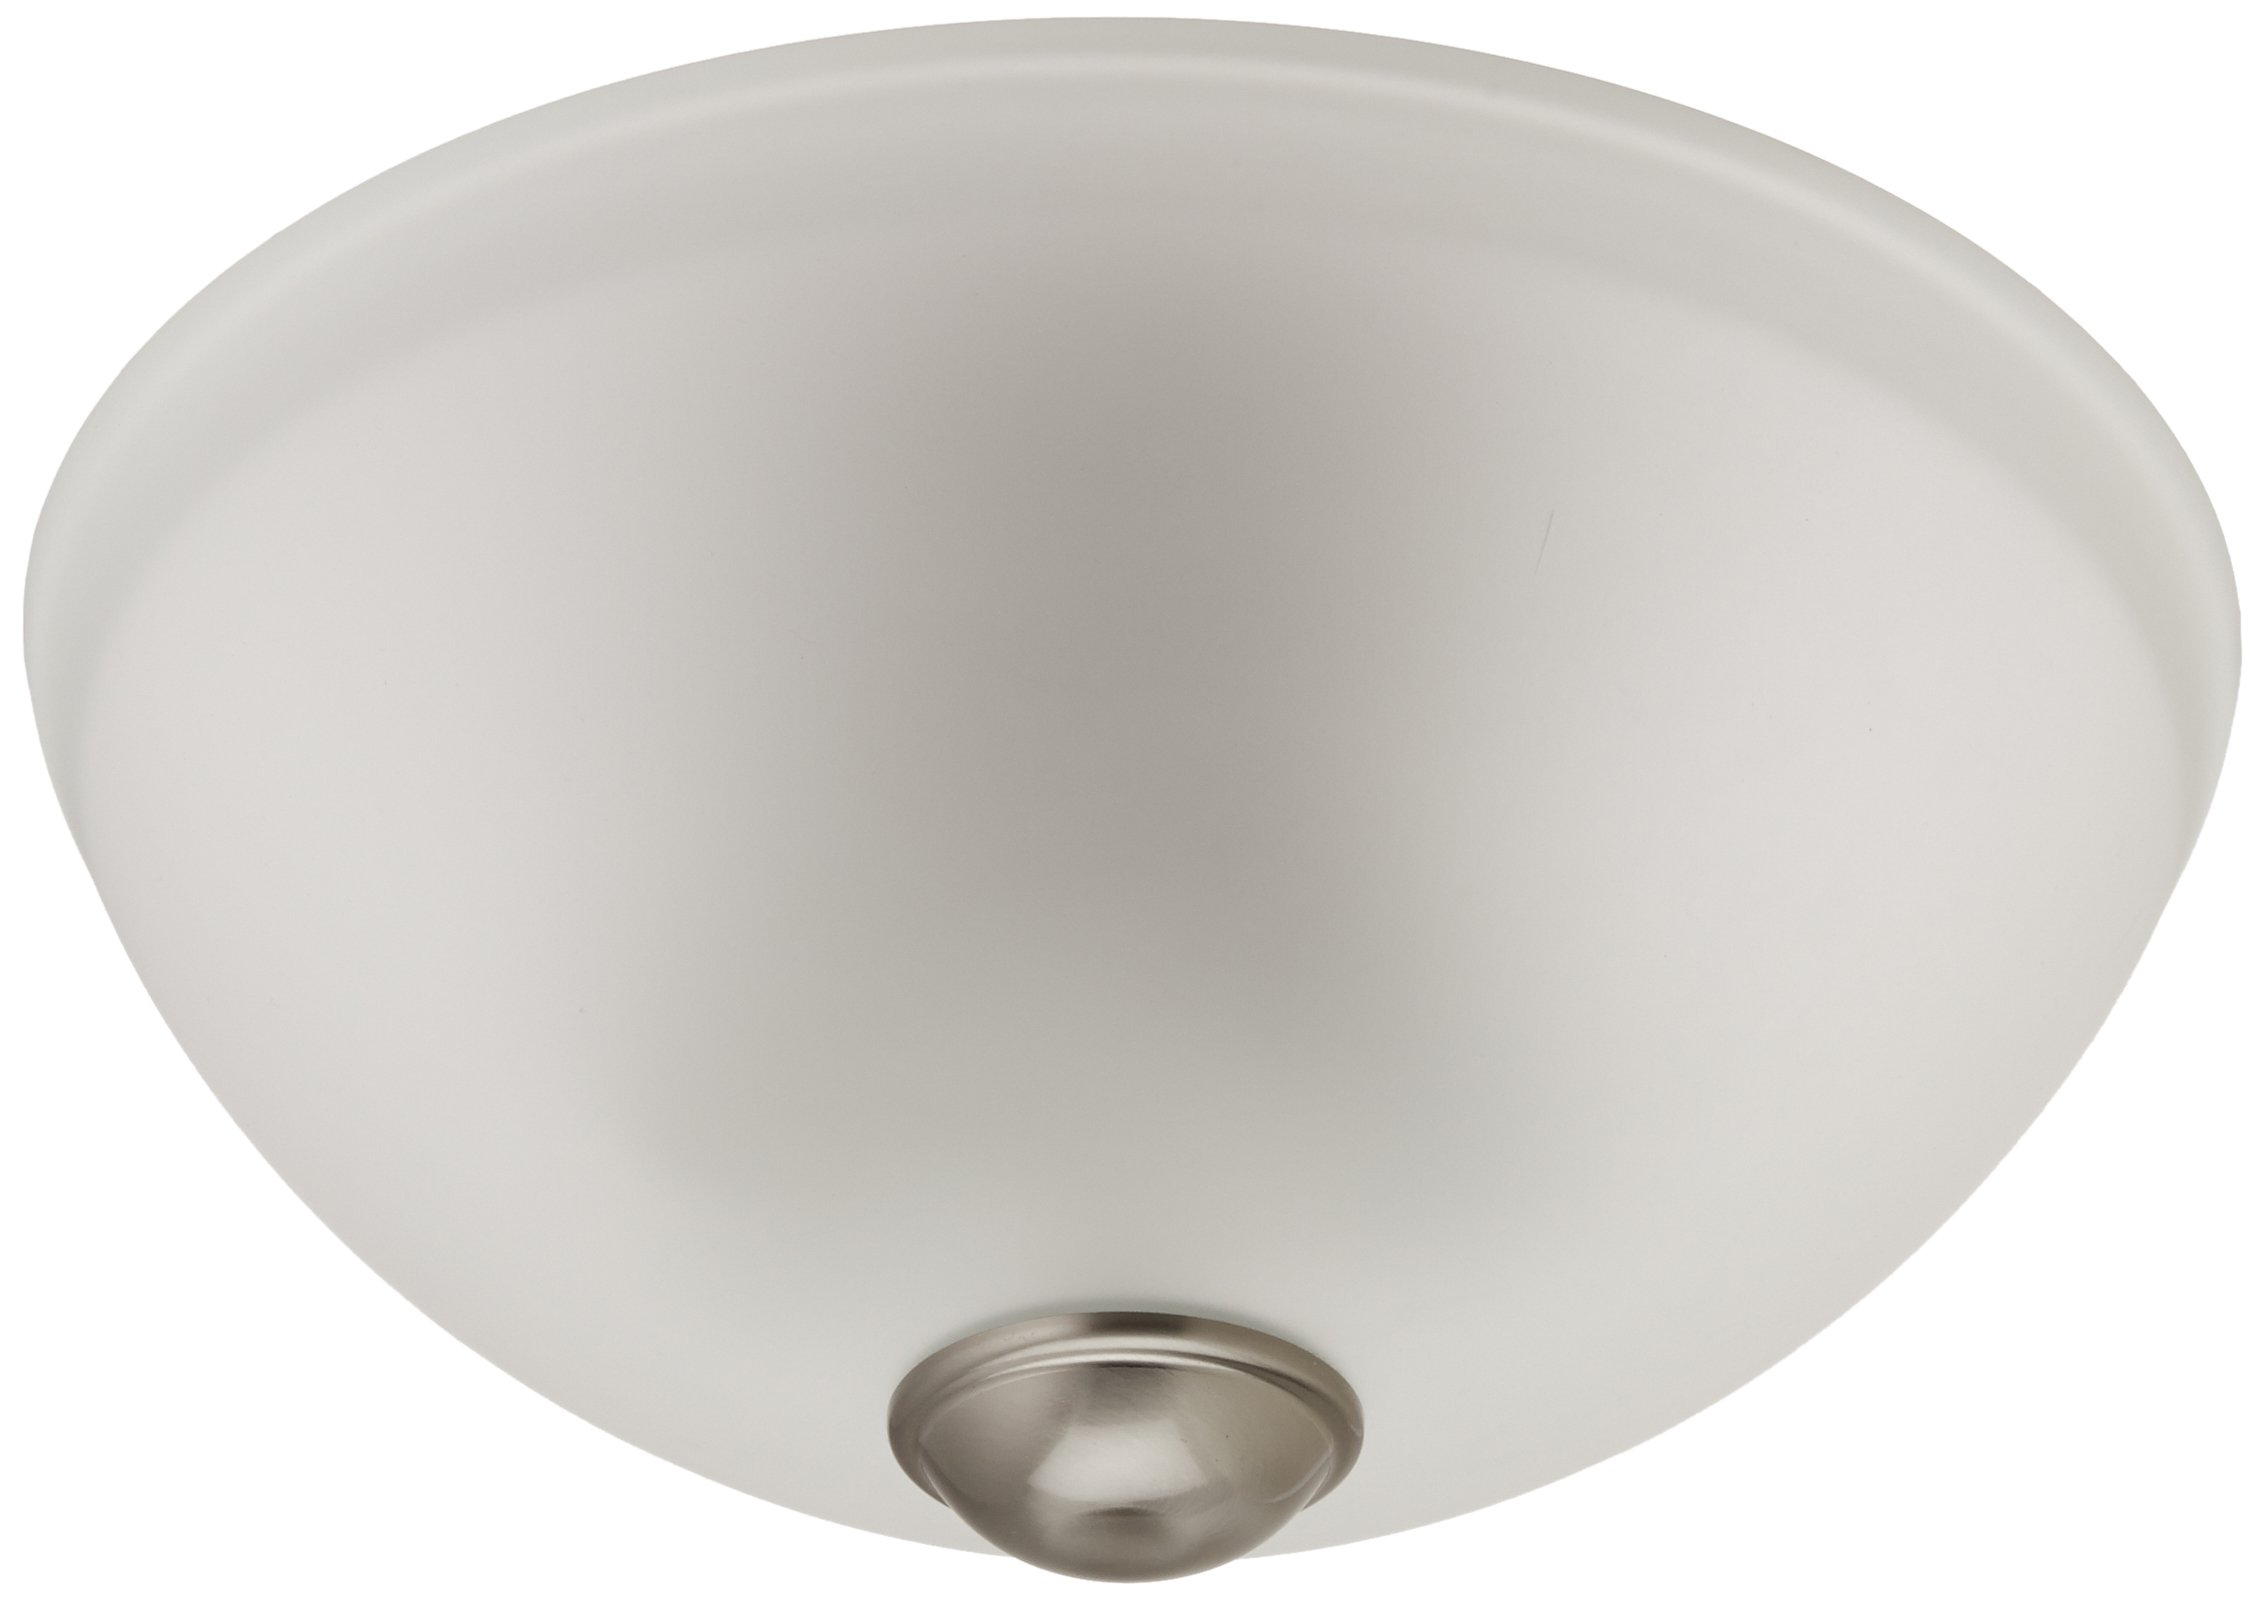 Livex Lighting 4206-91 Somerset Ceiling Mount